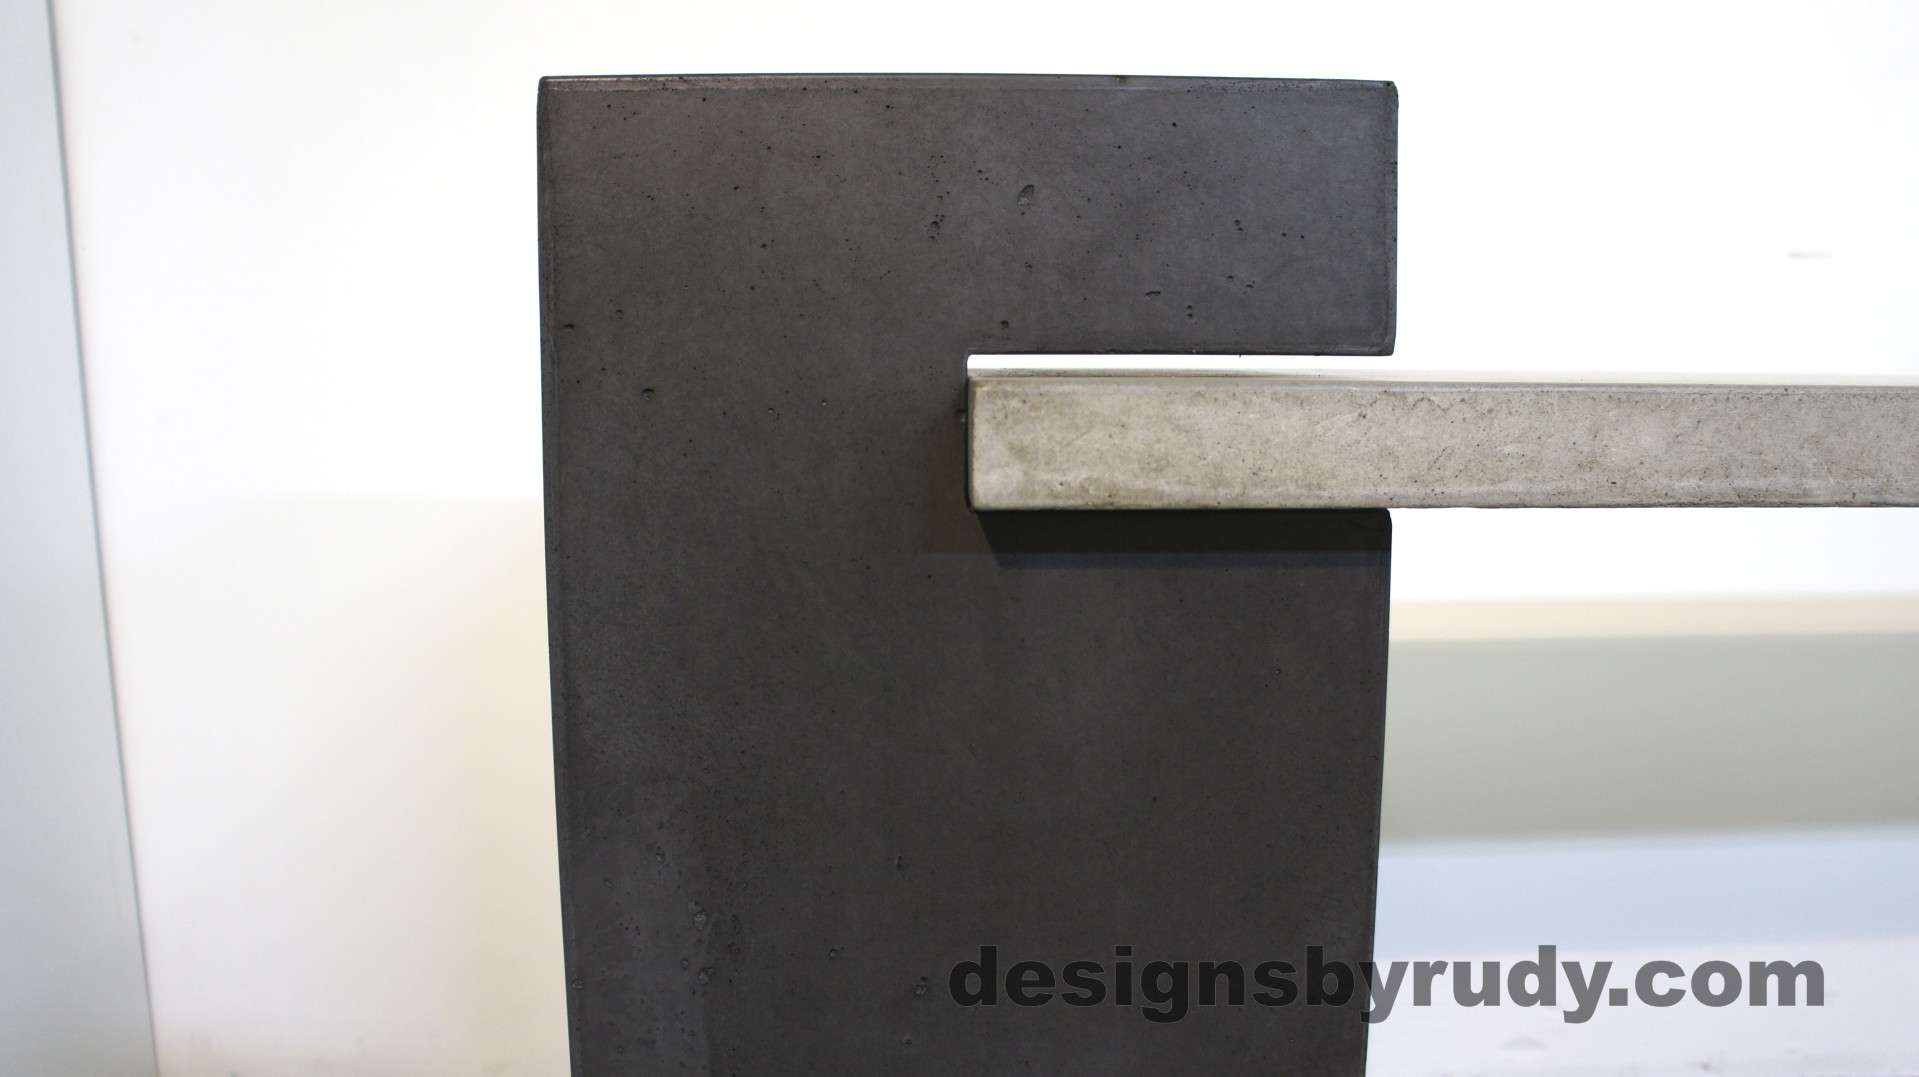 Concrete pedestal and horizontal slab detail of a concrete buffet table designed by Designs by Rudy